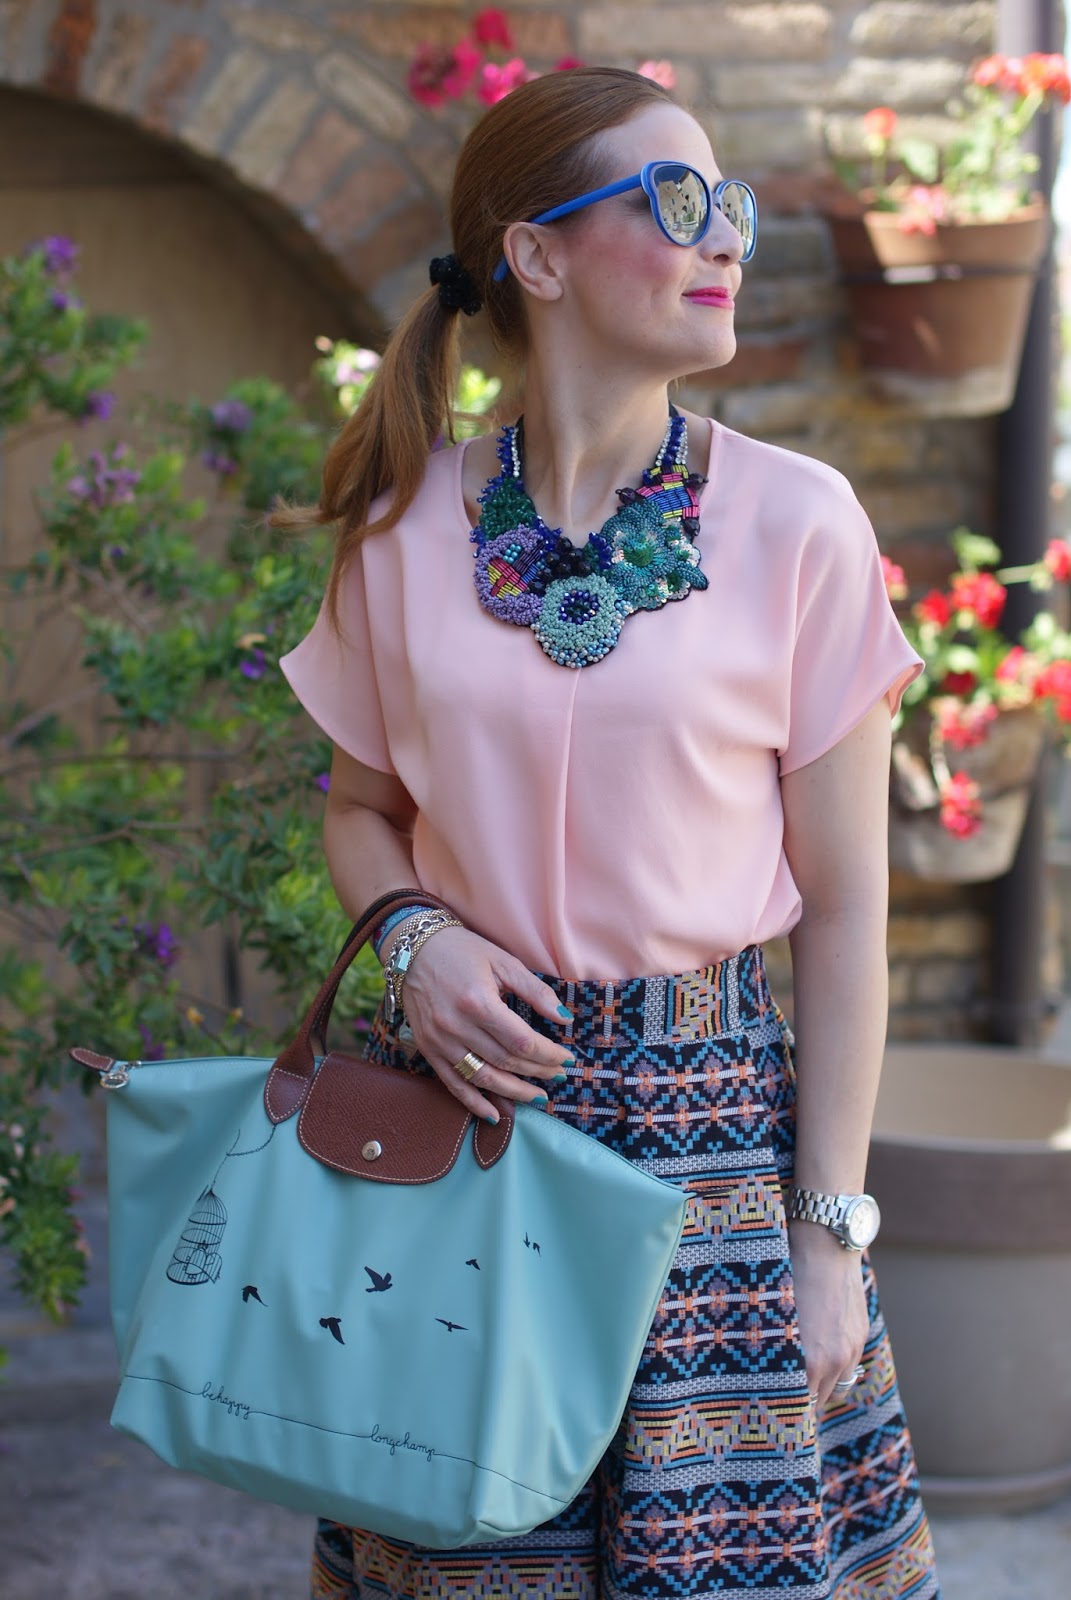 Le Pliage 2015, Longchamp Le Pliage cage aux oiseaux bag, jacquard midi skirt, simonab bijoux necklace, Fashion and Cookies fashion blog